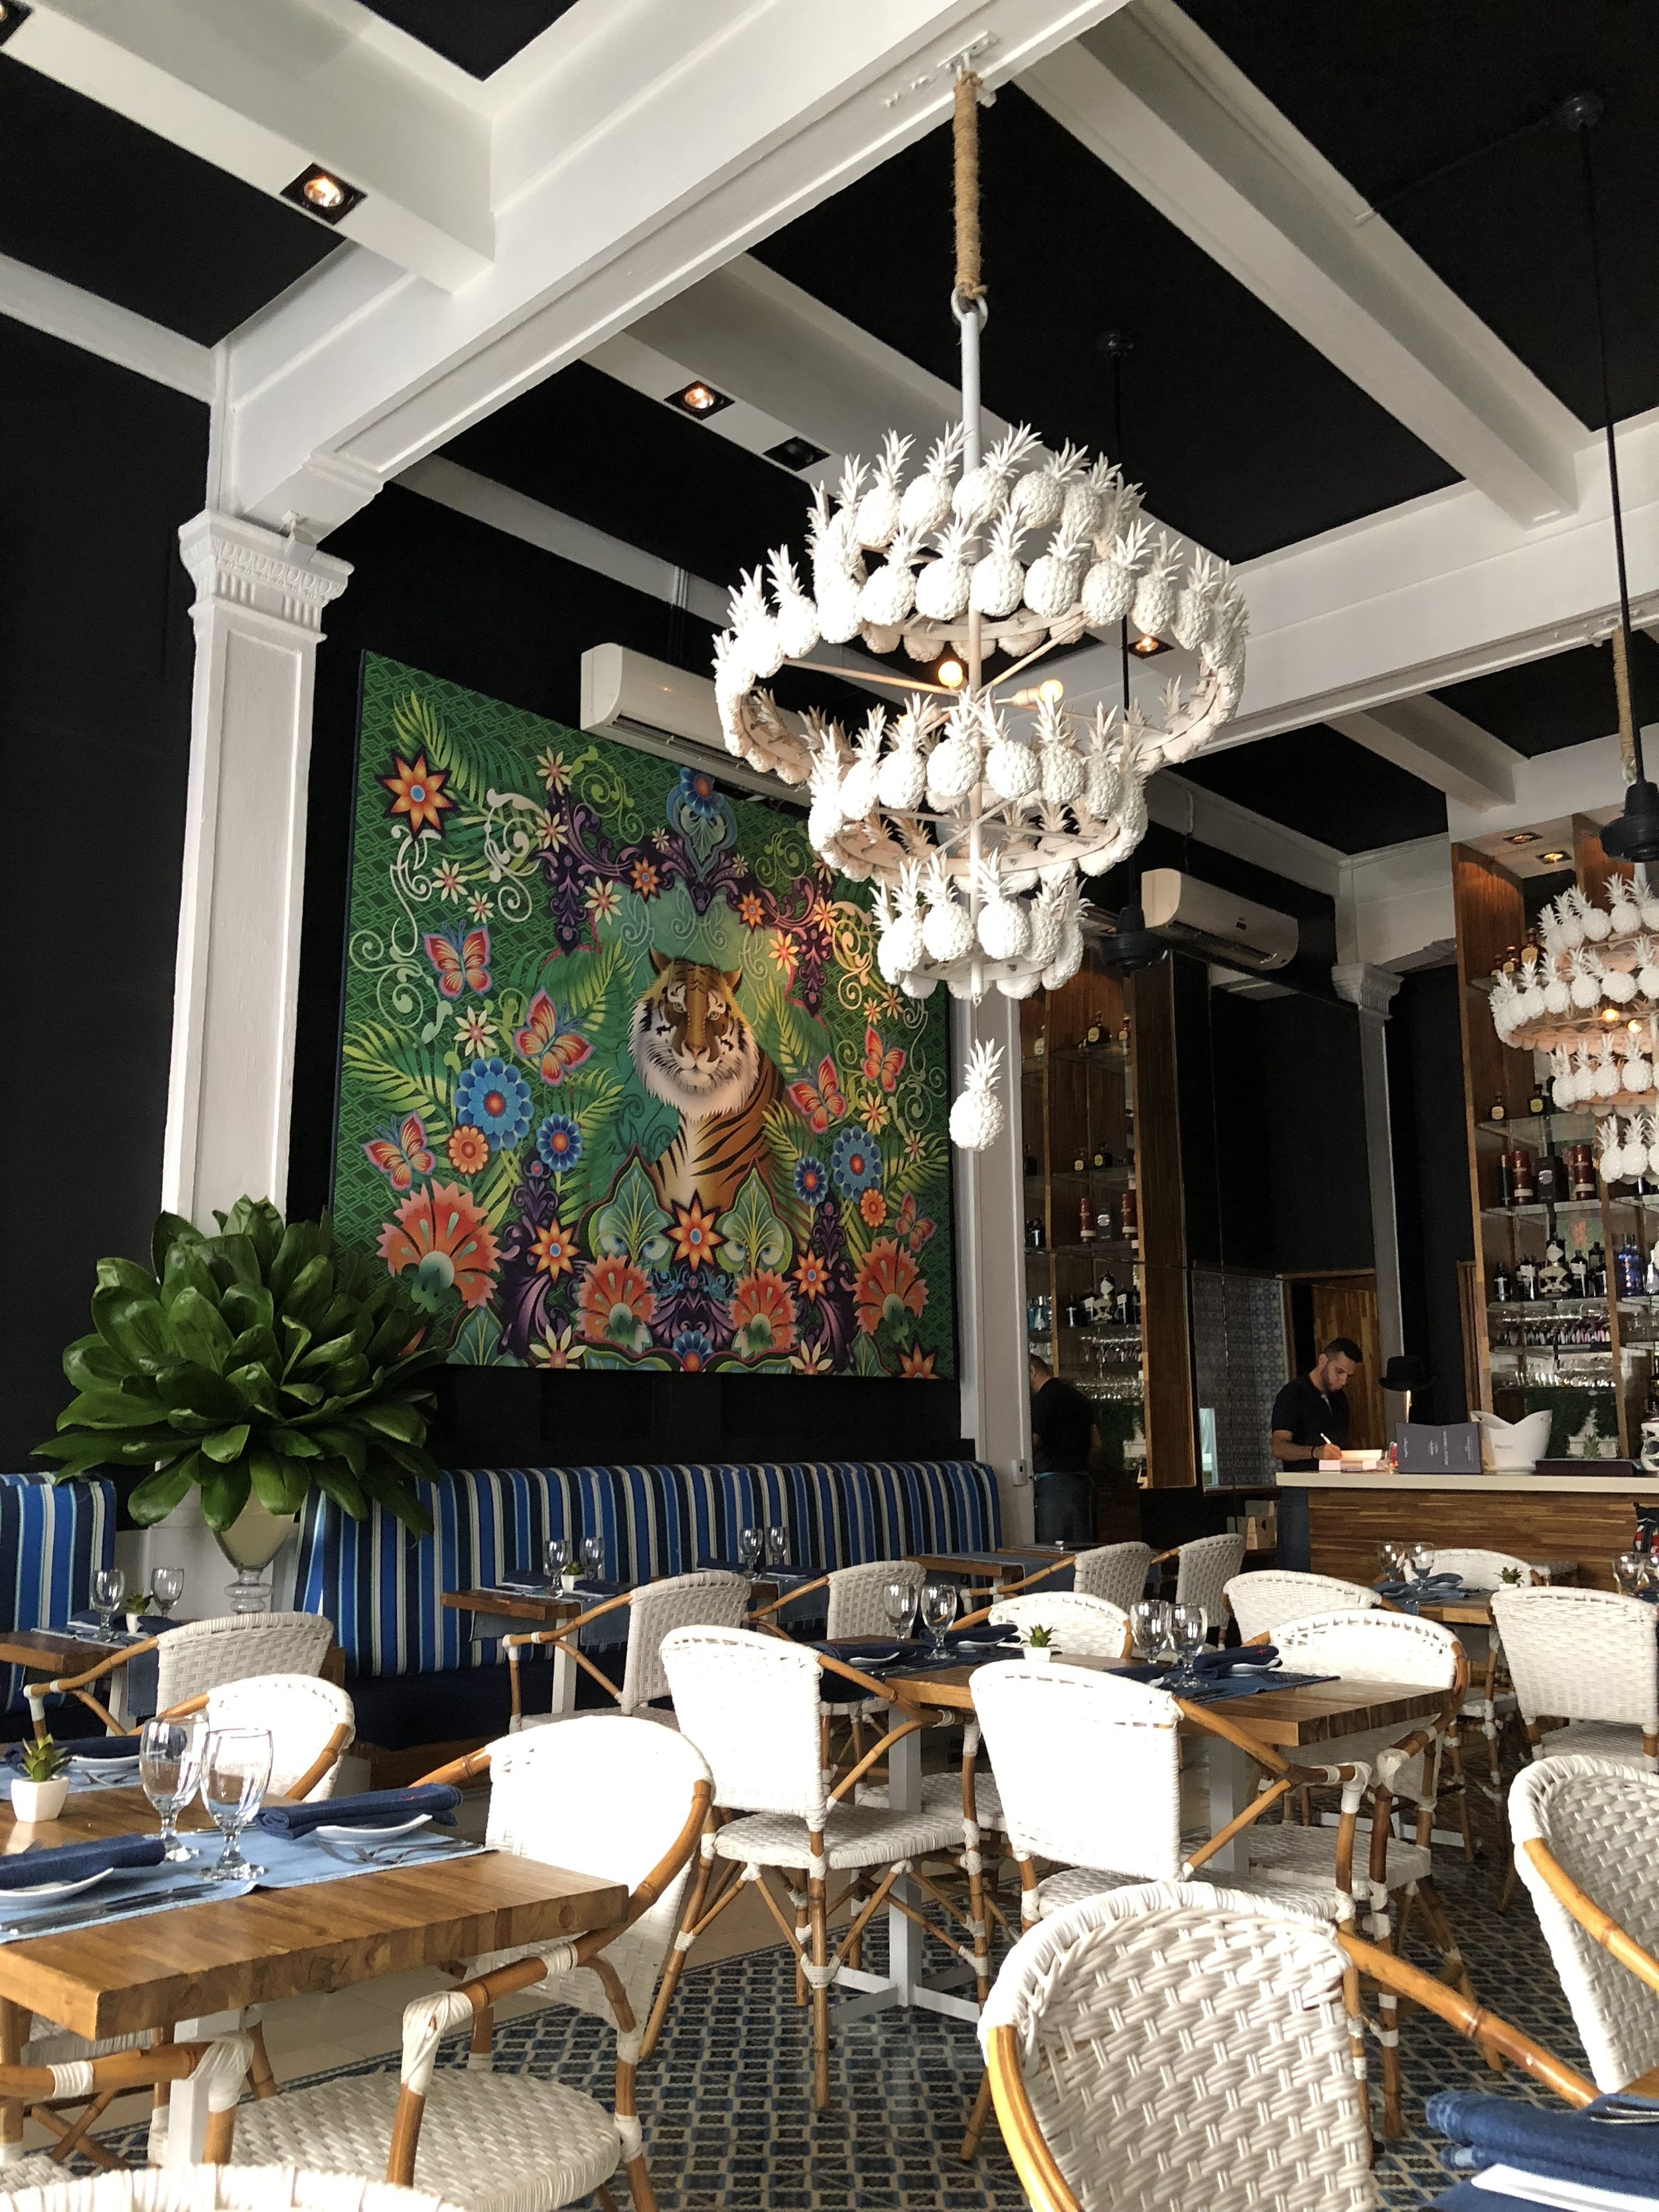 Maria - Colorful, elegant, and most importantly absolutely mouth-watering, the dishes at Maria will not disappoint.Designed by Maria Pinto, the stunning pineapple chandelier stands out against the mural of a tiger and sets the stage for woven white chairs that scream tropical chic.